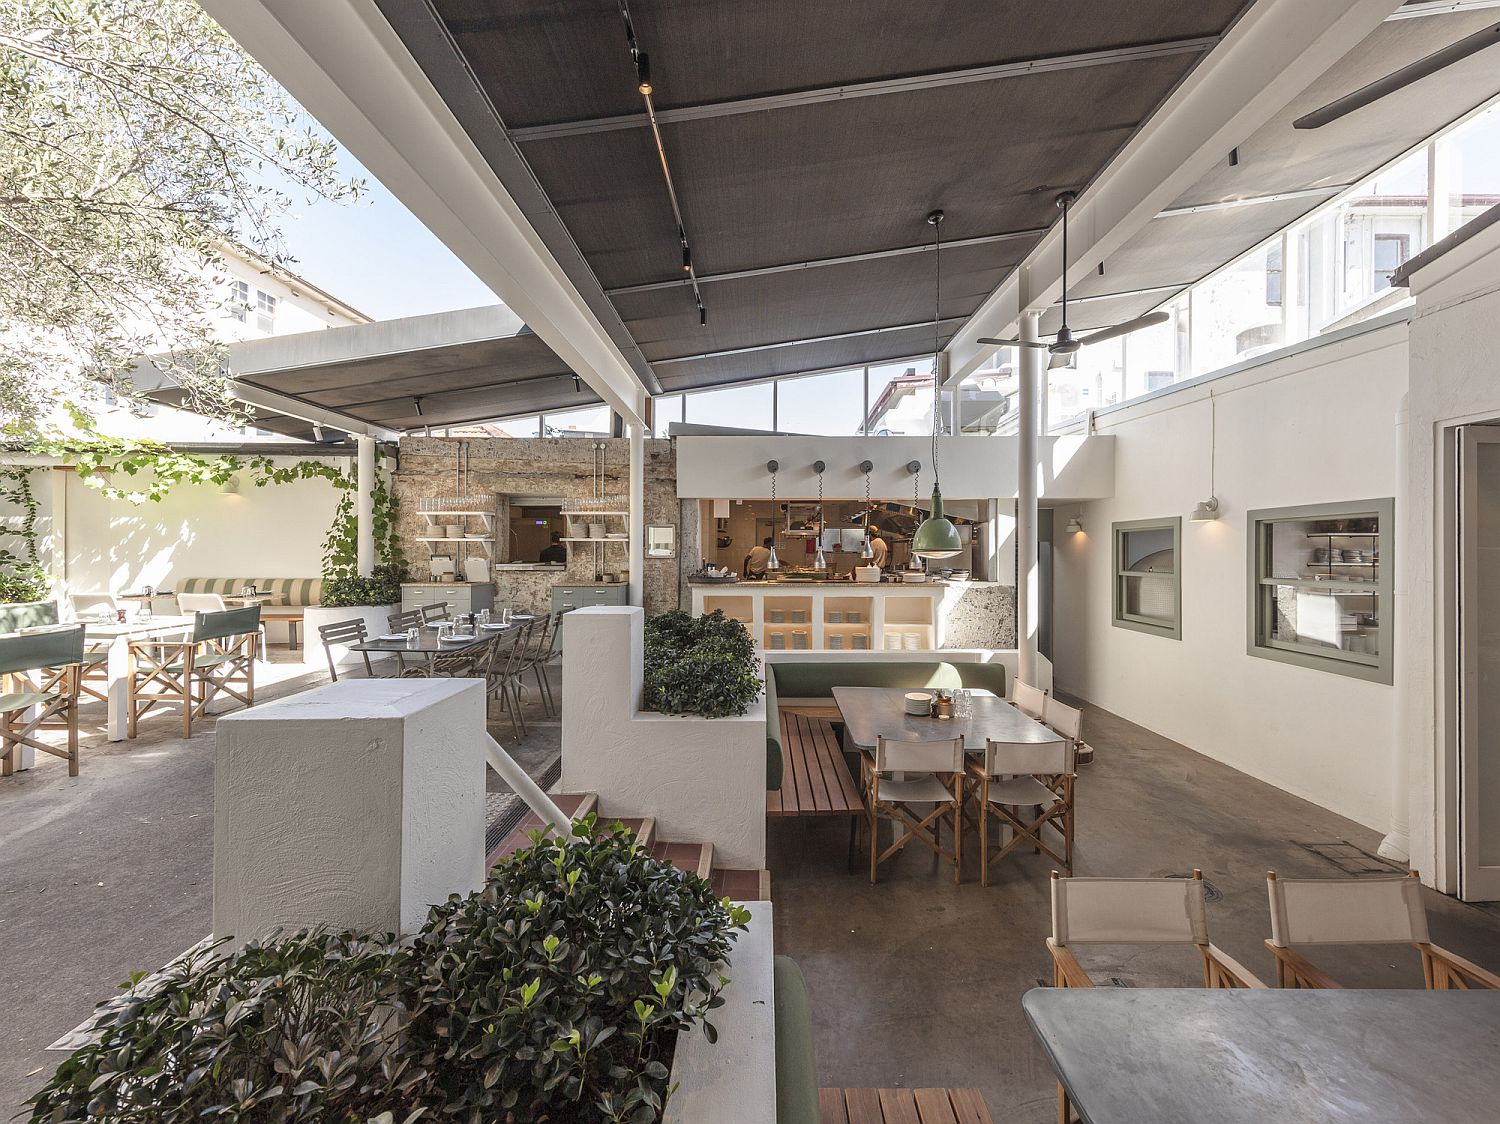 Totti's-courtyard-adds-greenery-to-the-setting